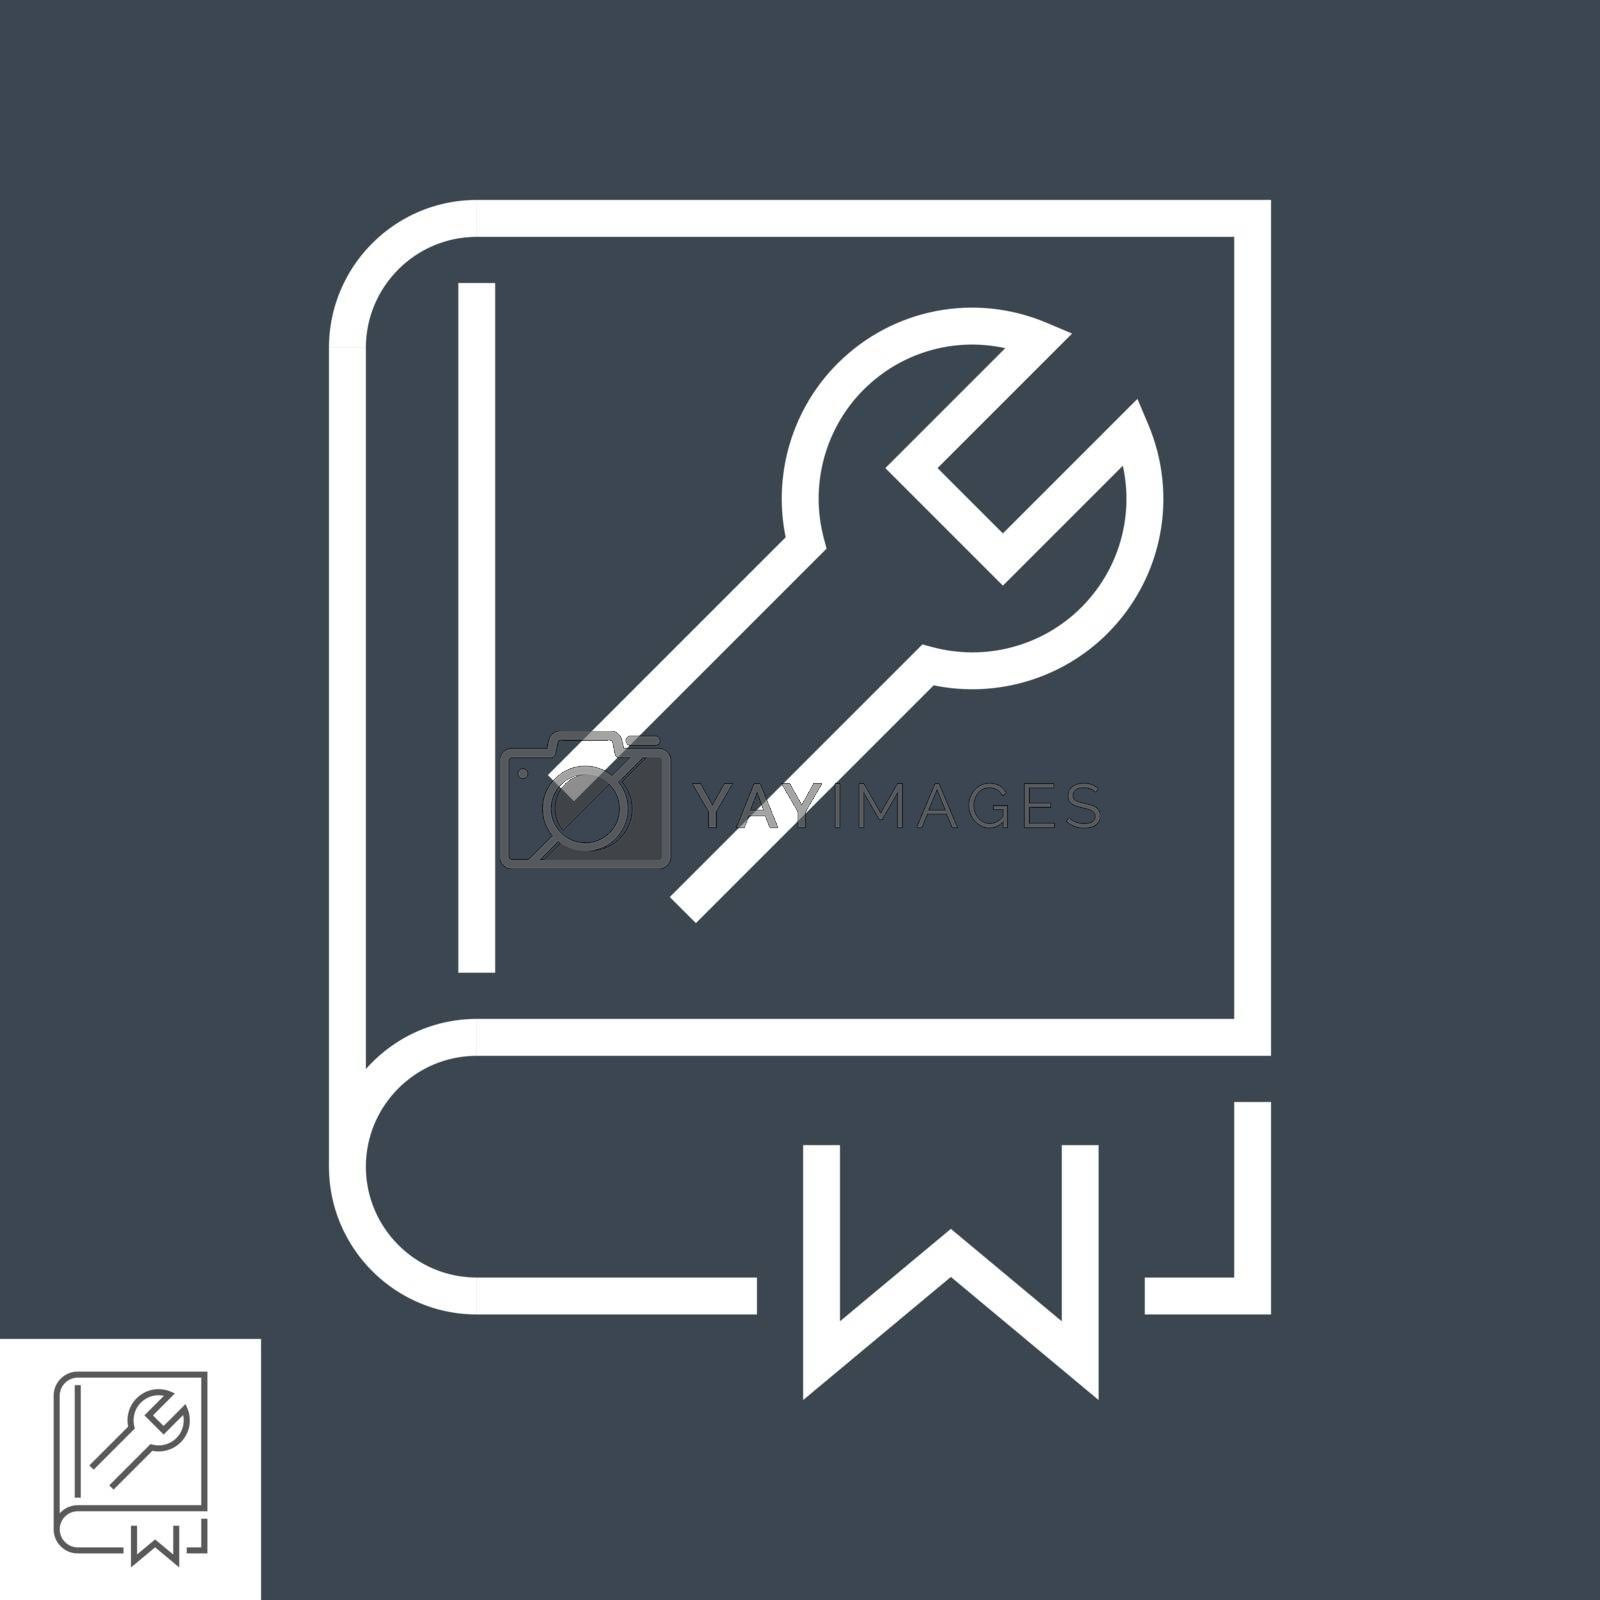 User Guide Book Thin Line Vector Icon. Flat icon isolated on the black background. Editable EPS file. Vector illustration.